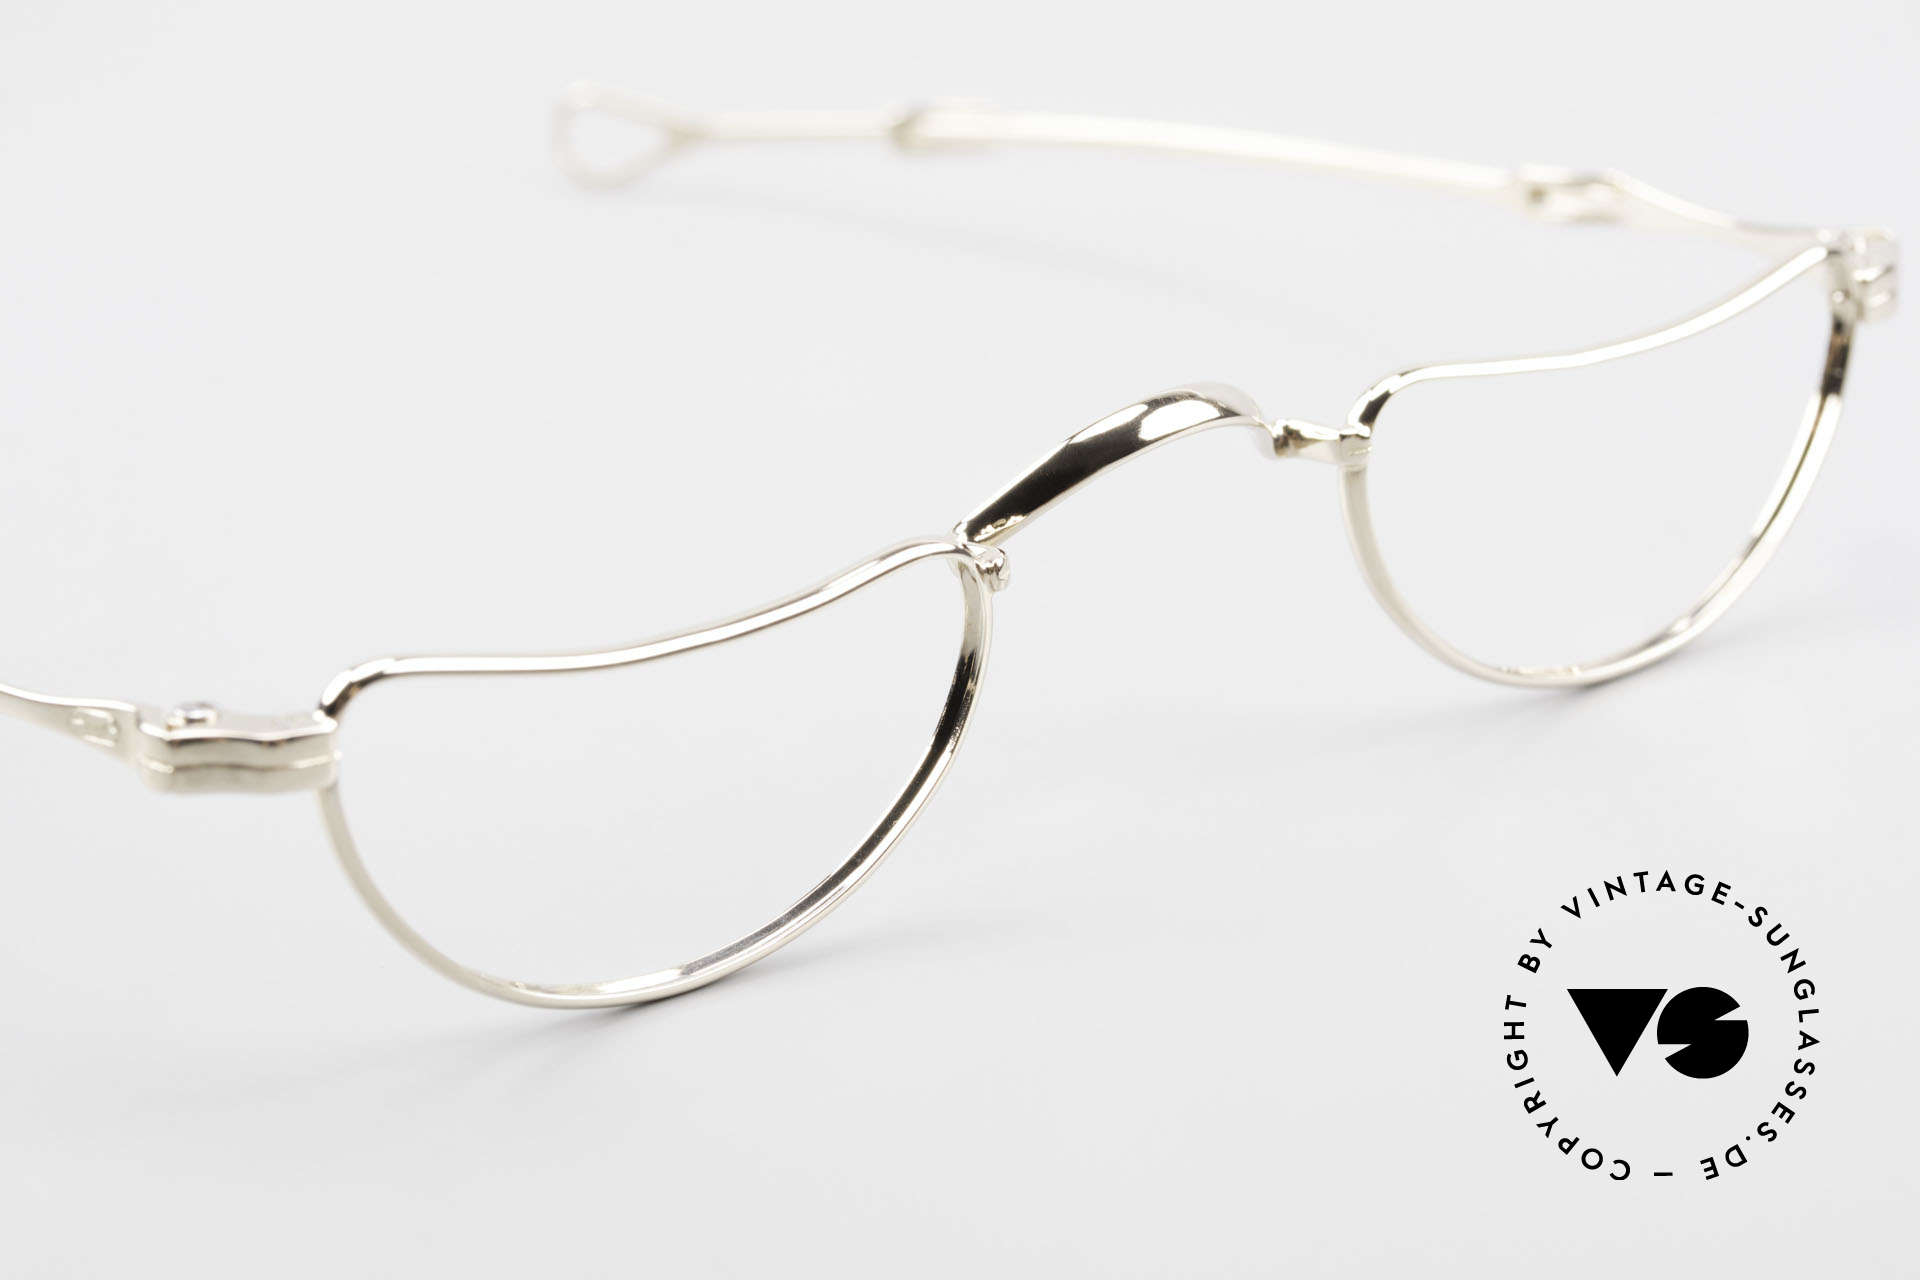 Lunor Goldbrille Solid Gold Glasses 16ct Frame, unworn ORIGINAL from 1991 (for all lovers of quality), Made for Men and Women